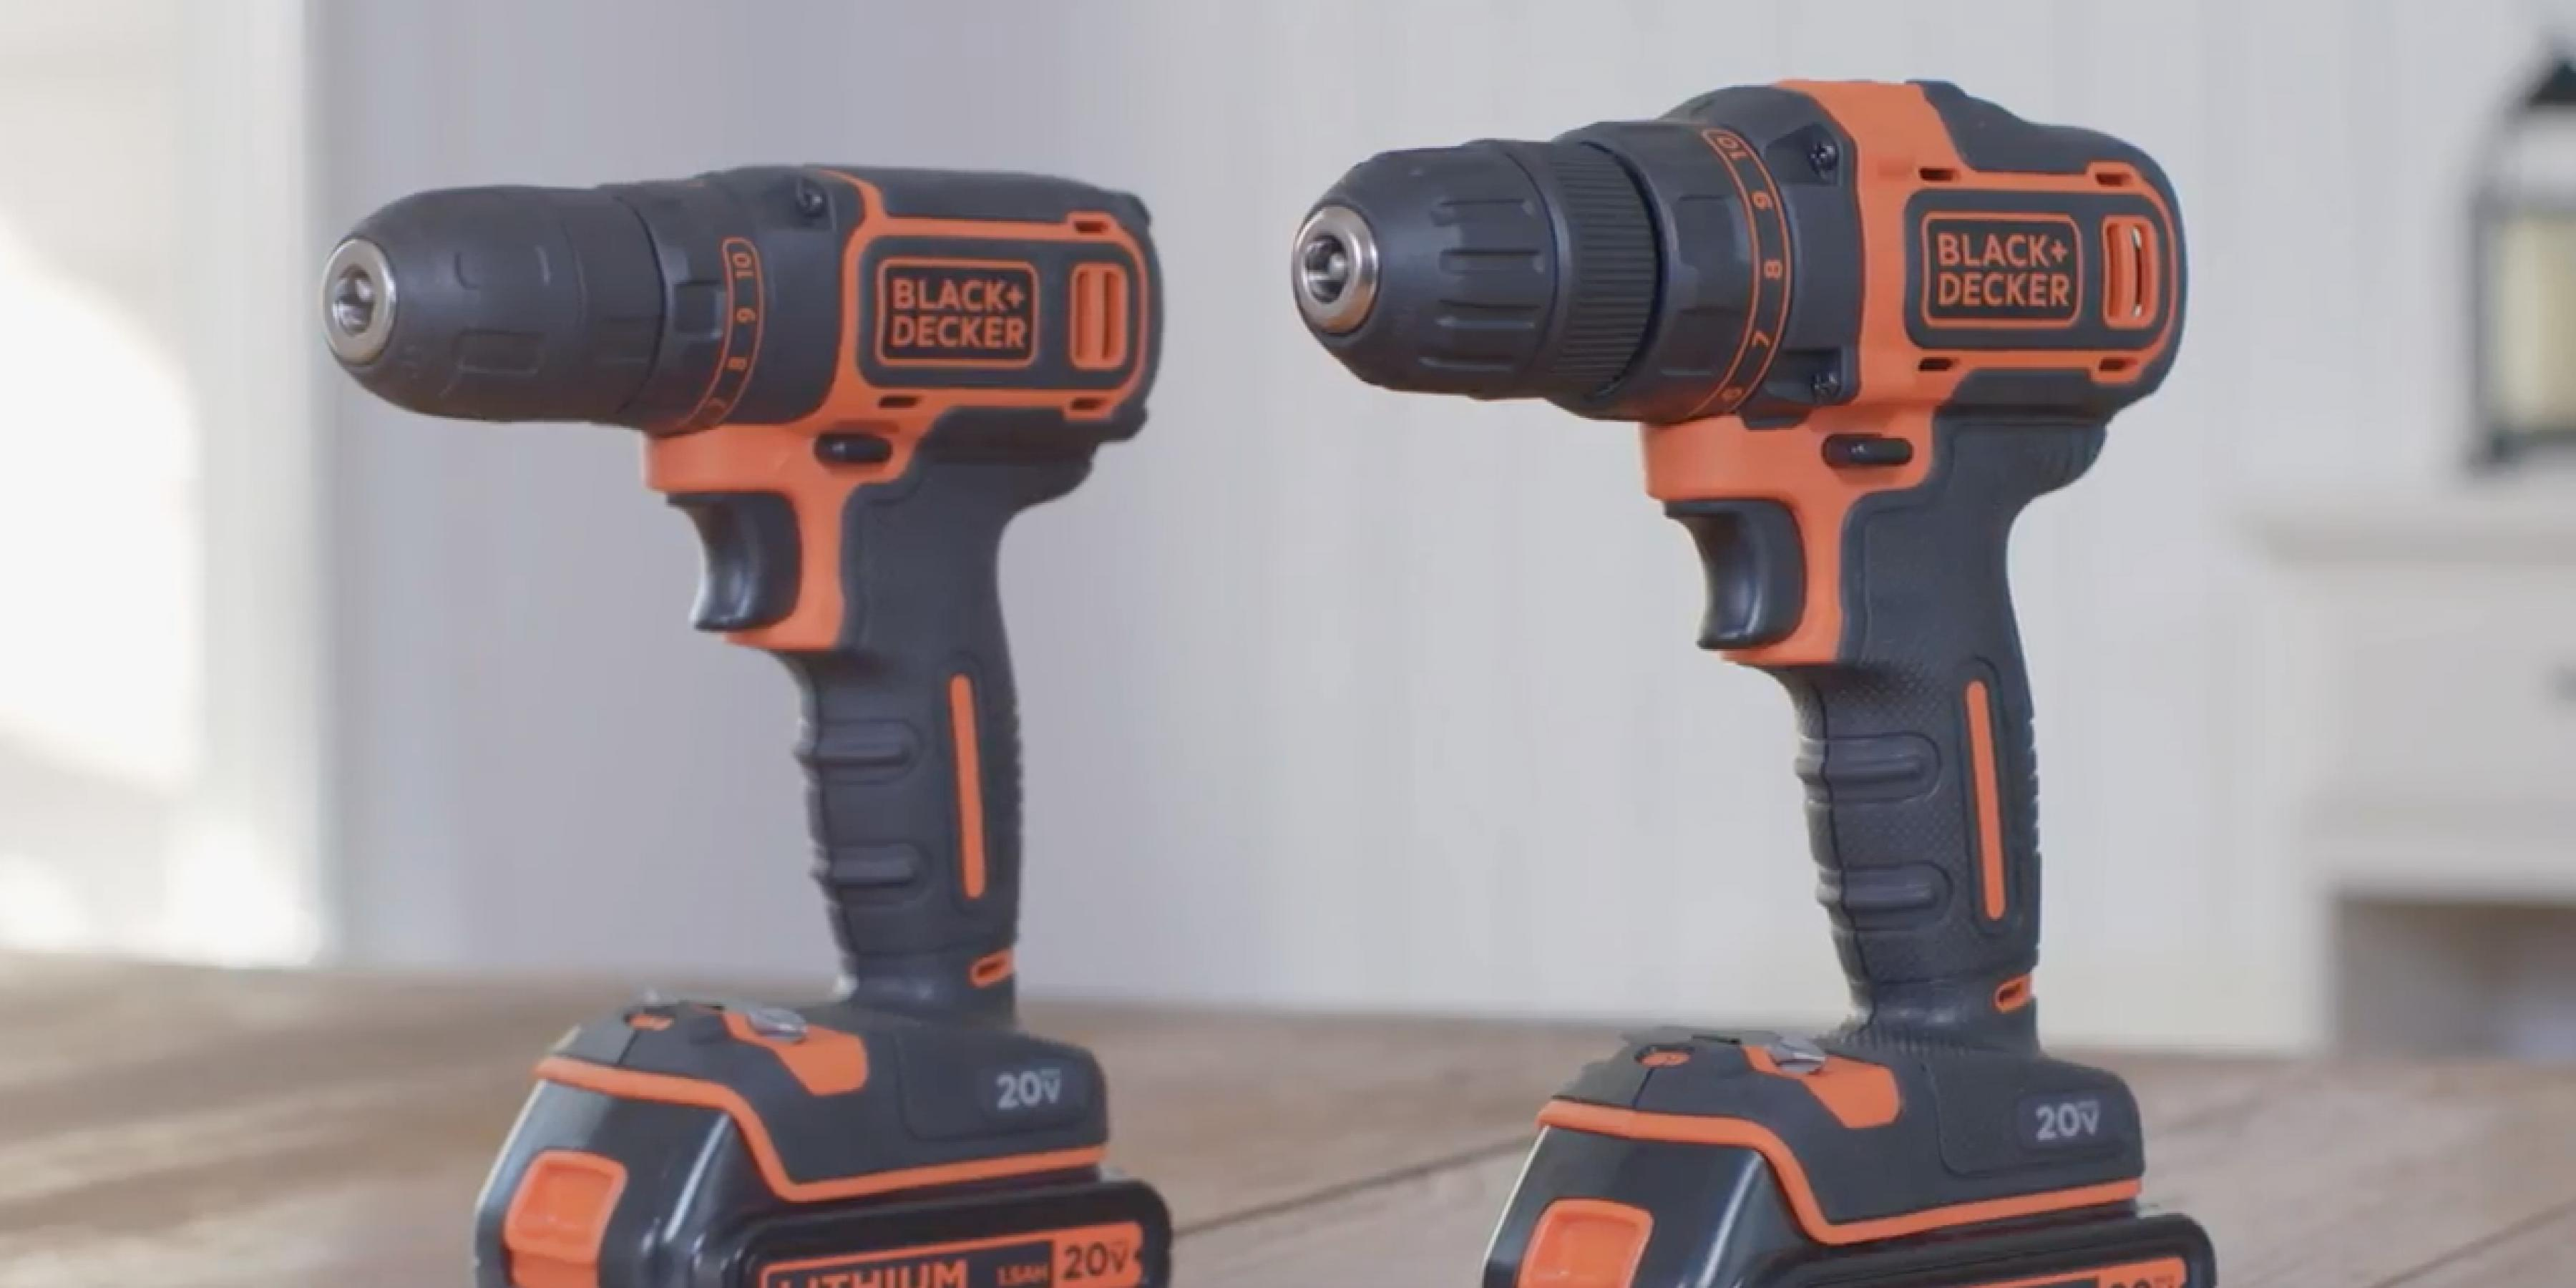 20V MAX* Lithium Drills from BLACK+DECKER